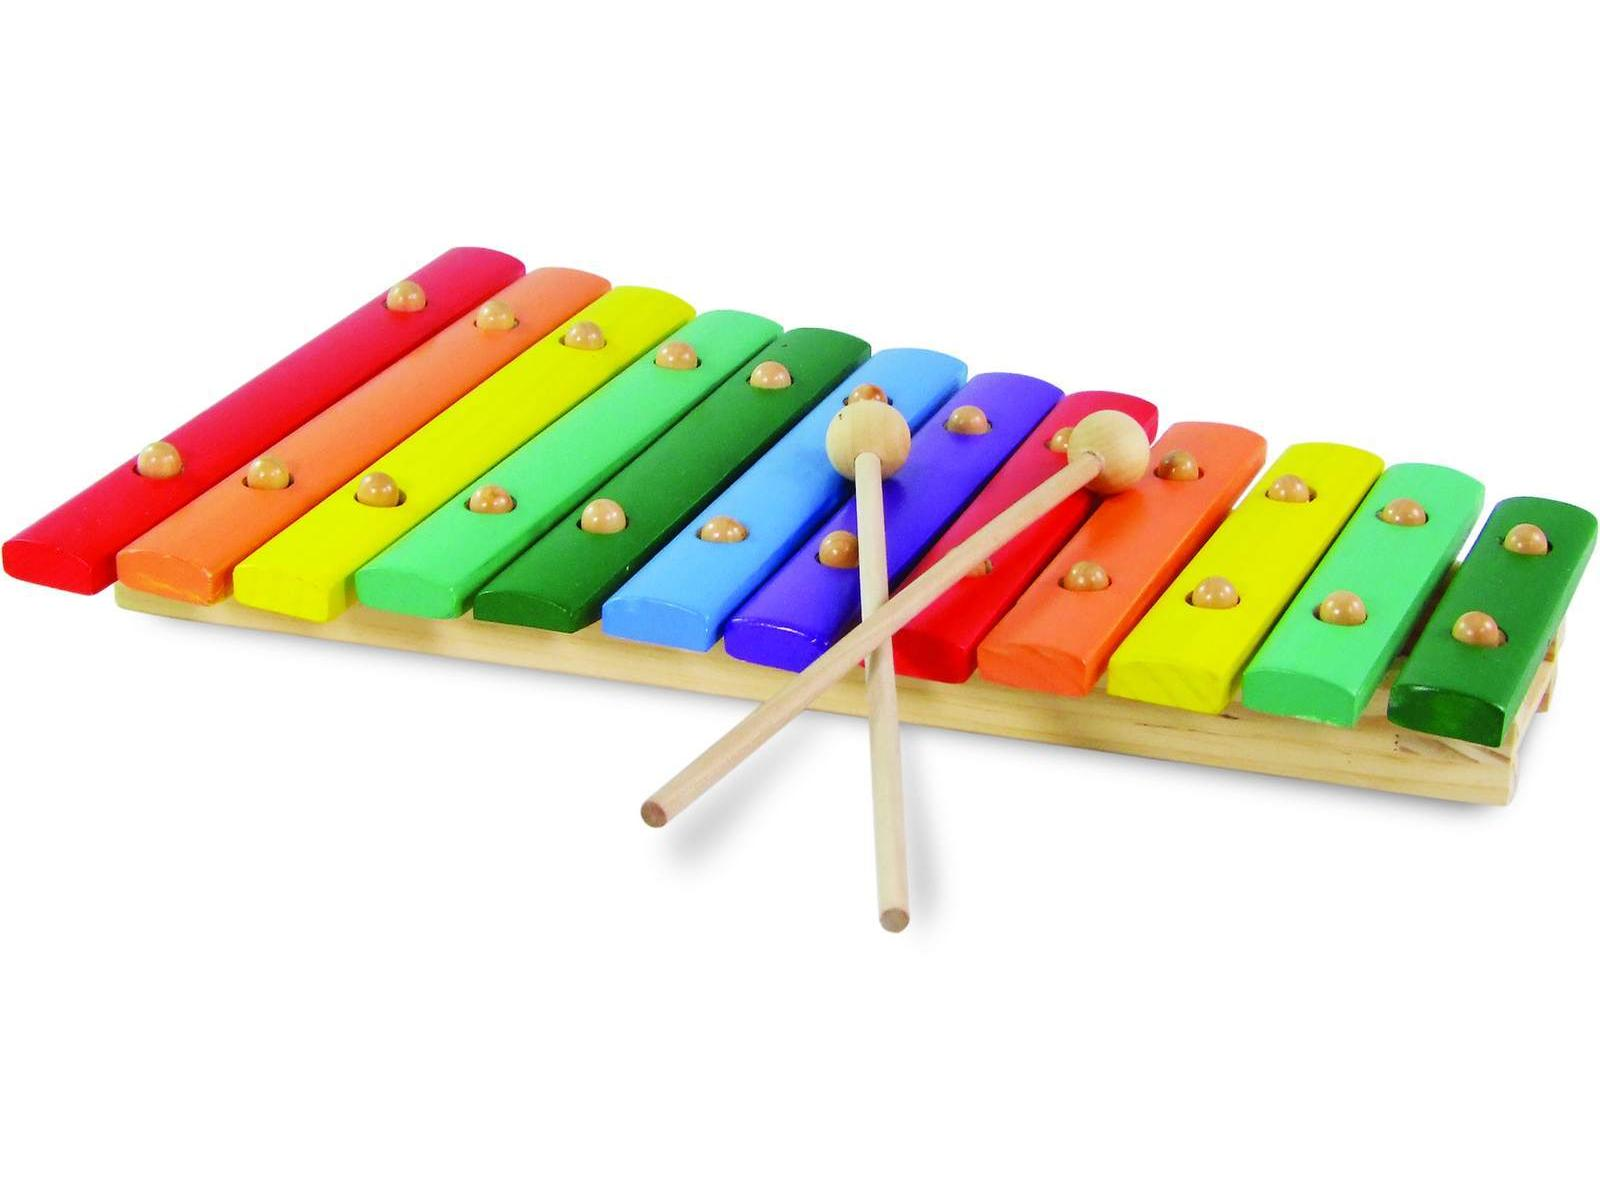 X Is For Xylophone Day 24 Of A To Z Challenge Beth Rodgers Author